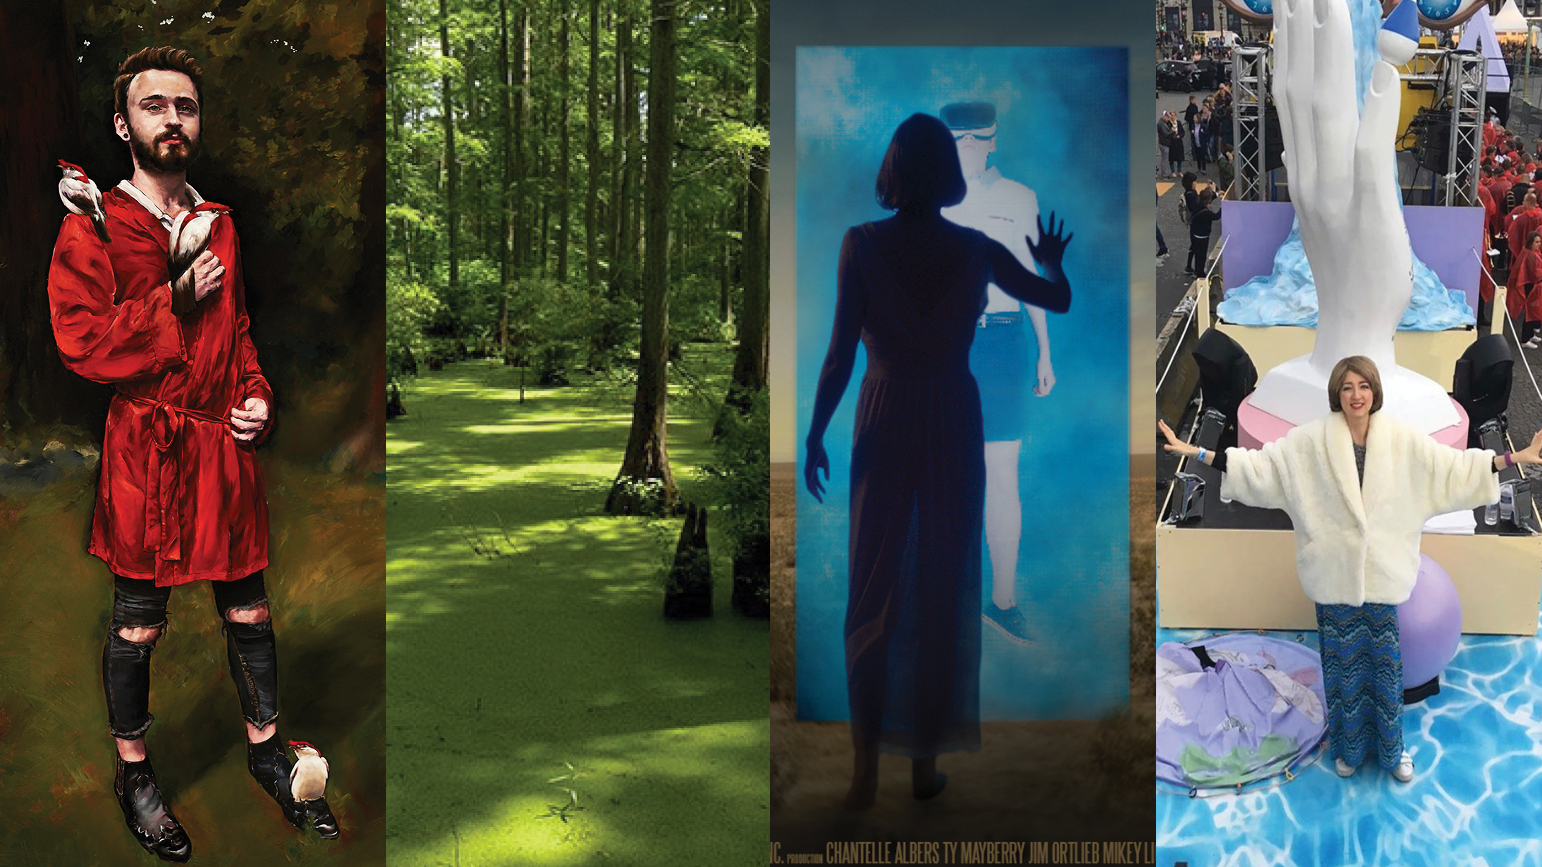 Four images: 1) painting of a young man; 2) photograph of a forest; 3) silhouette of a woman in front of a door; 4) woman on a parade float with her arms outstretched